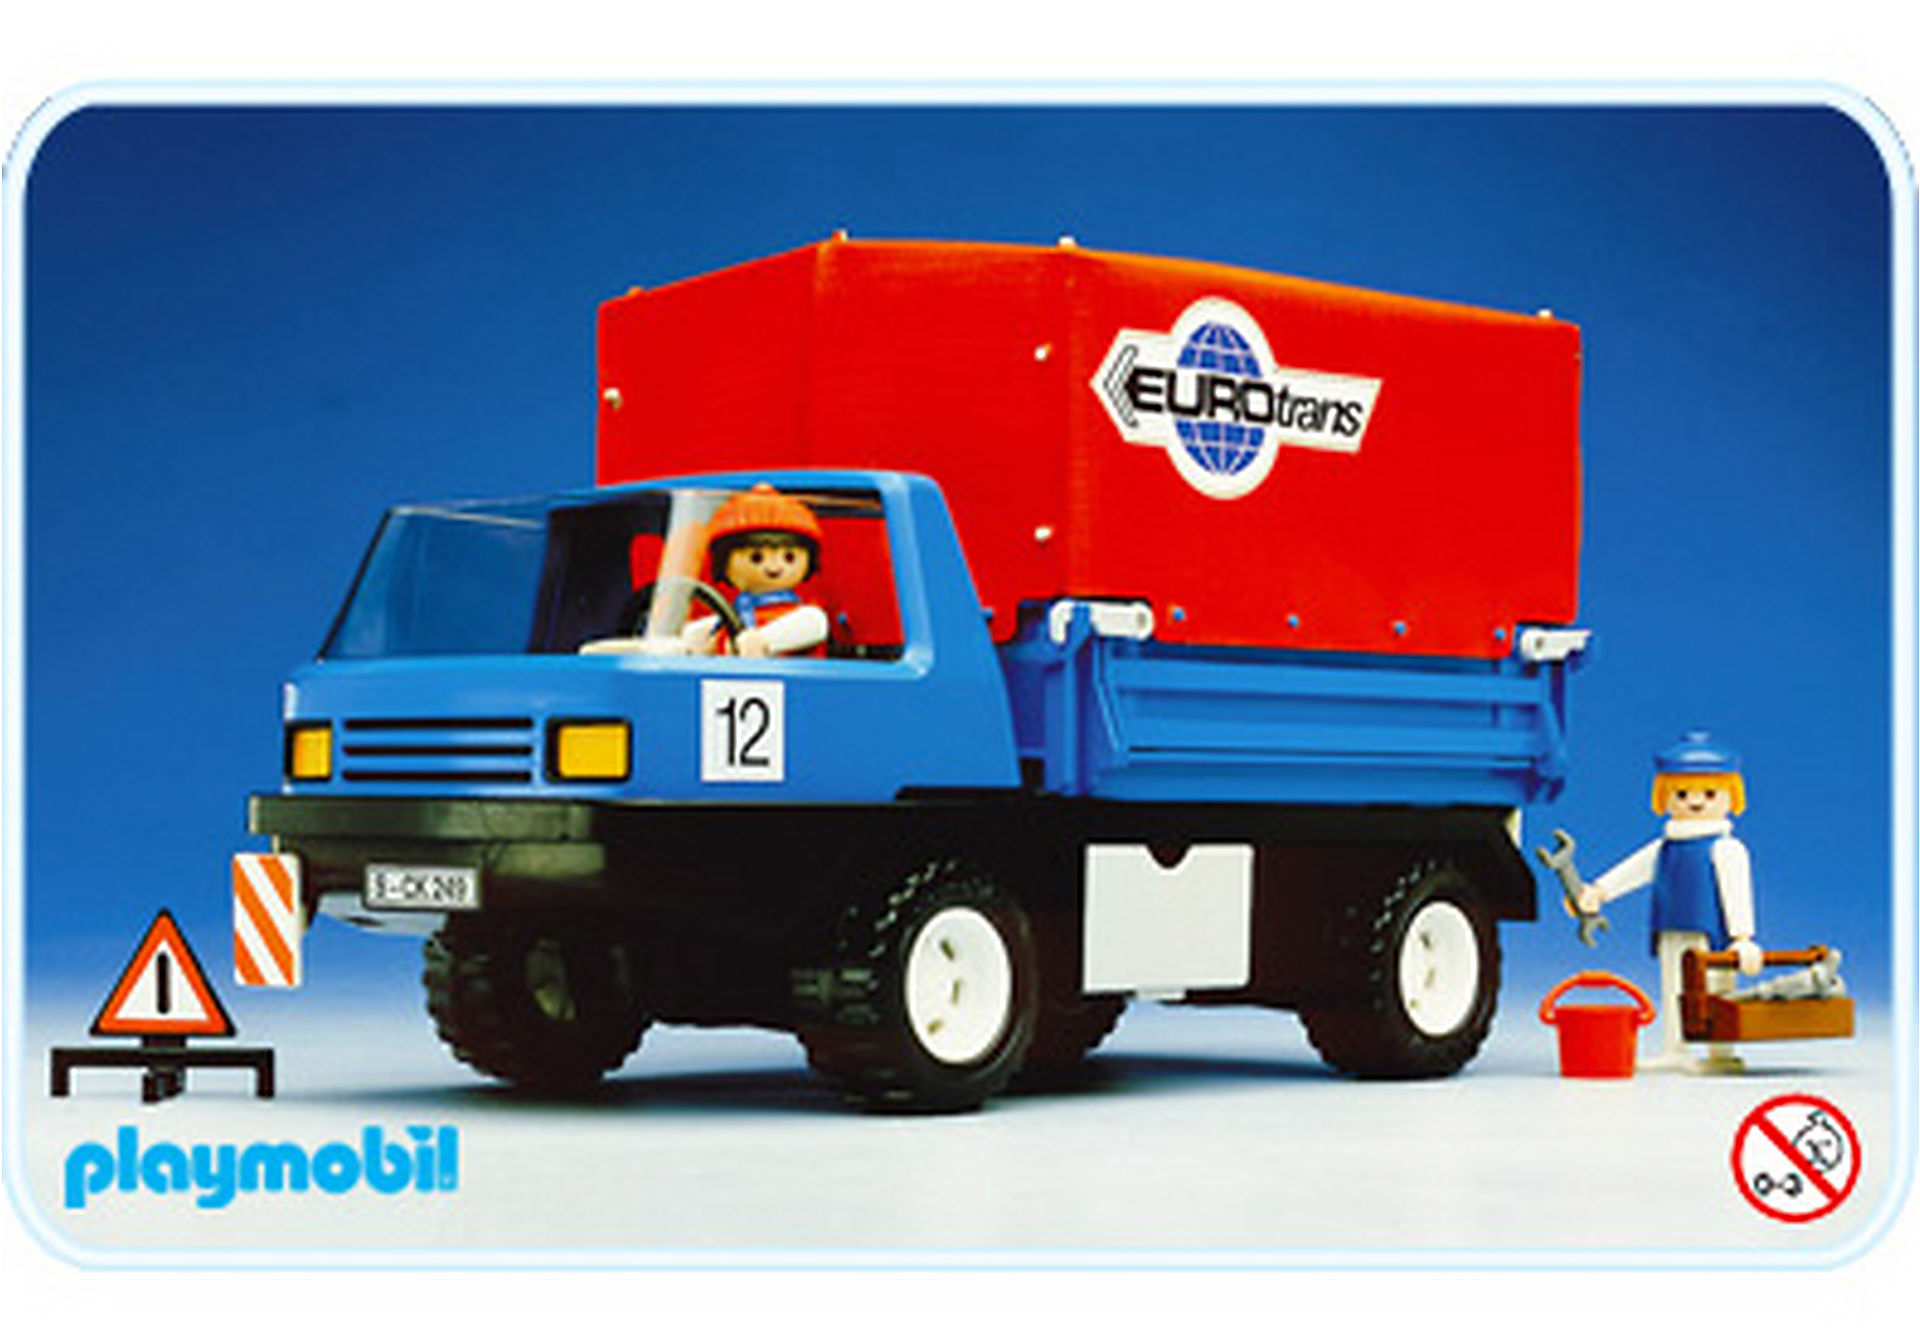 http://media.playmobil.com/i/playmobil/3476-A_product_detail/Lastkraftwagen